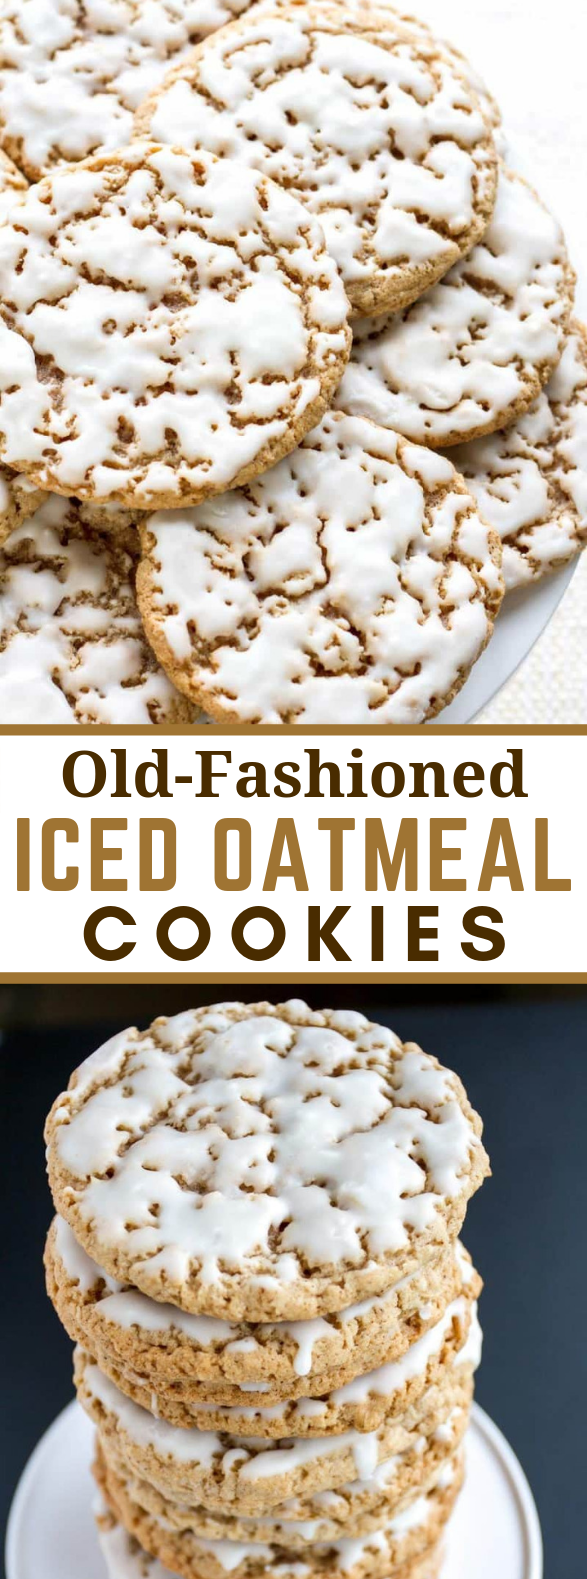 Old-Fashioned Iced Oatmeal Cookies #desserts #vegetarian